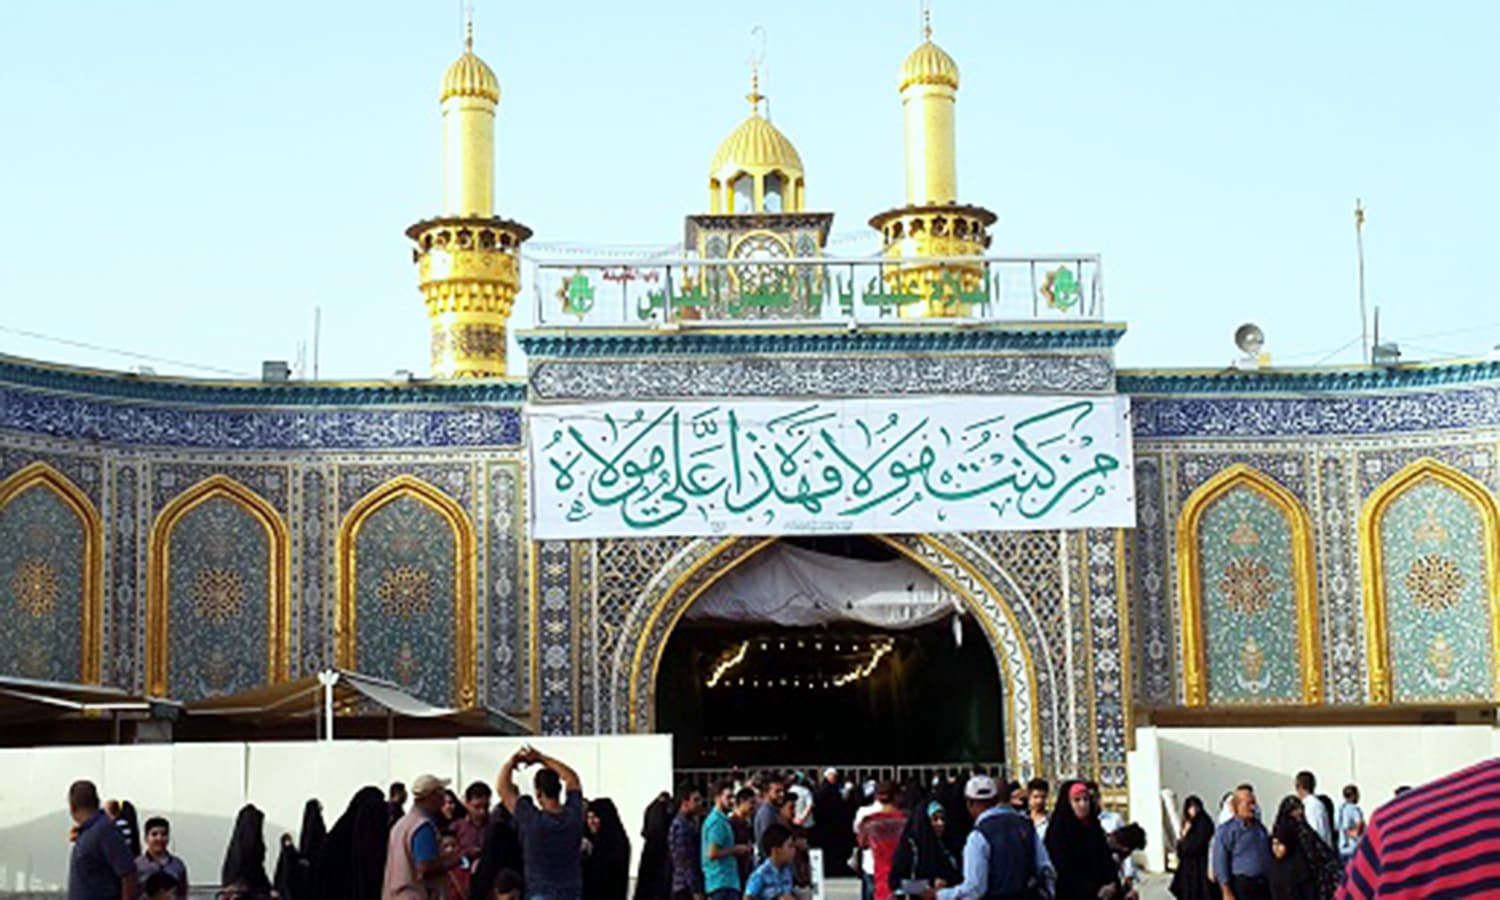 The shrine of Hazrat Abbas, which is the same distance from Imam Hussain's shrine, as the hills of Safa and Marwa in Mecca.